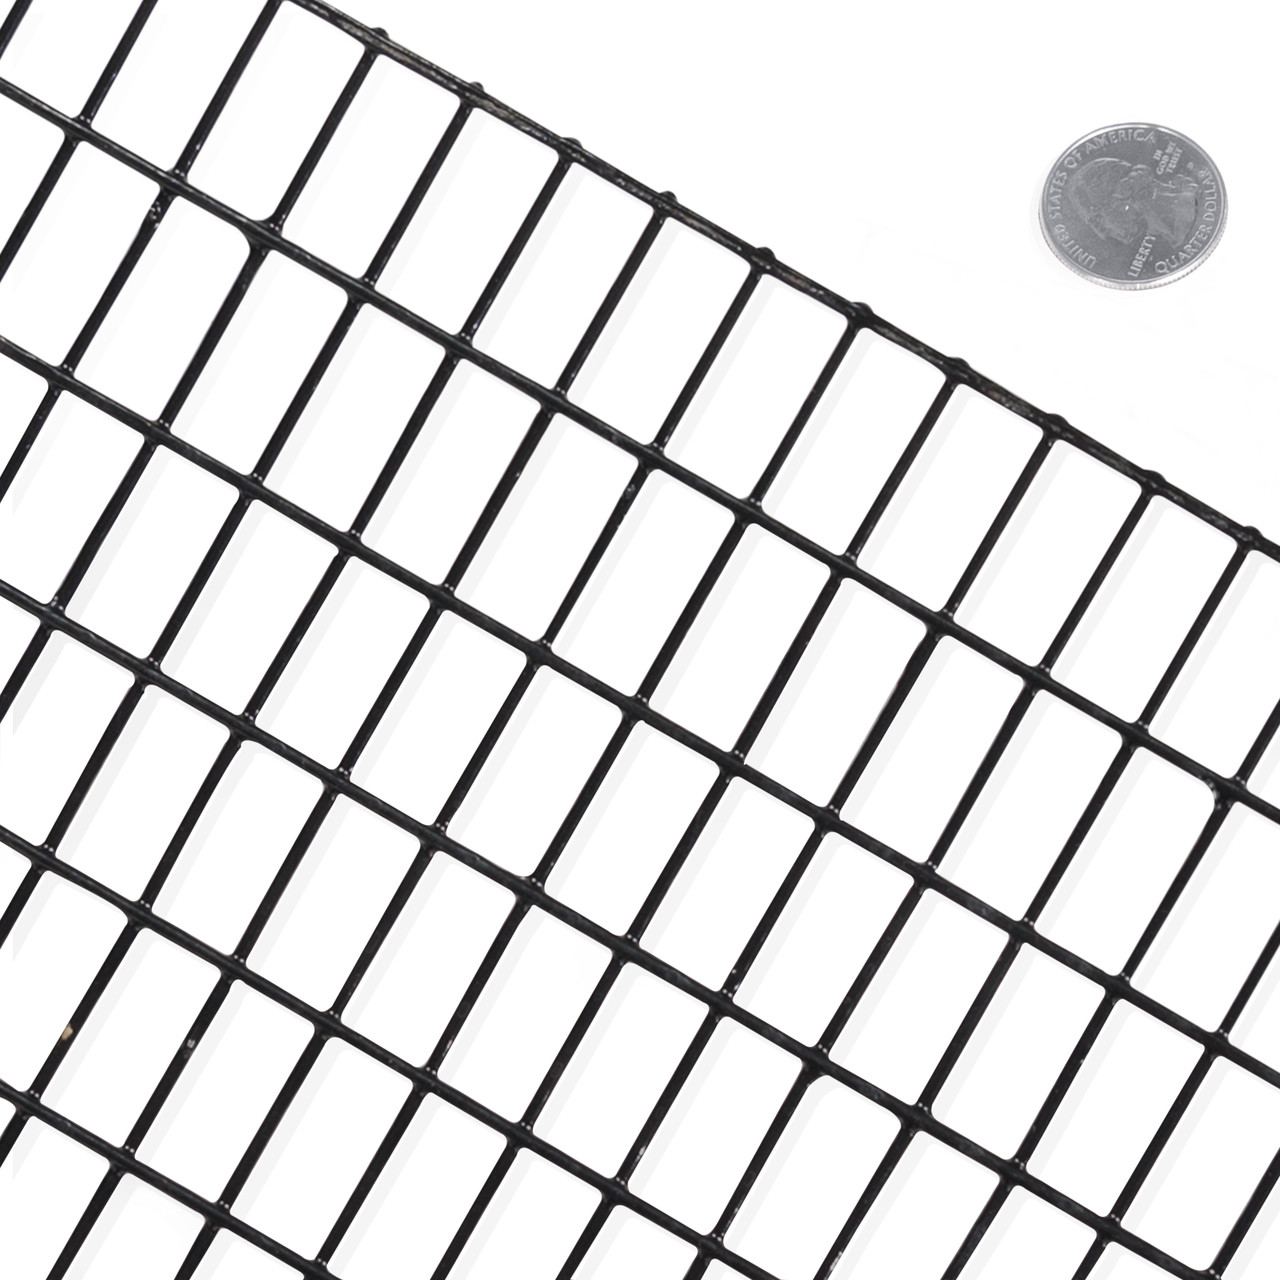 16 Gauge Black Vinyl Coated Welded Wire Mesh Size 0.5 inch